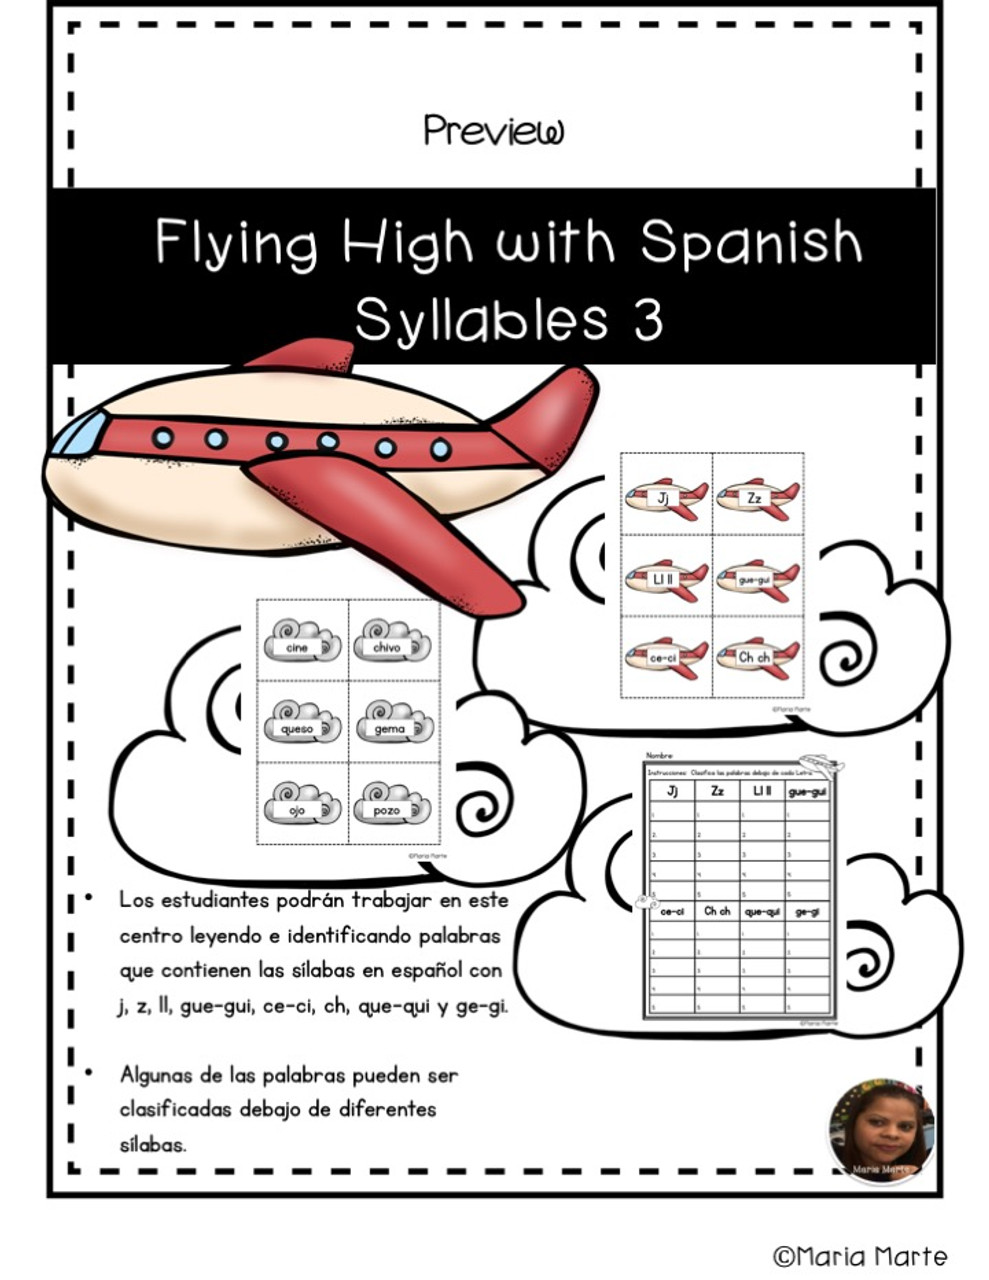 Volando Alto con las Sílabas 3 // Flying High with Spanish Syllable Words 3